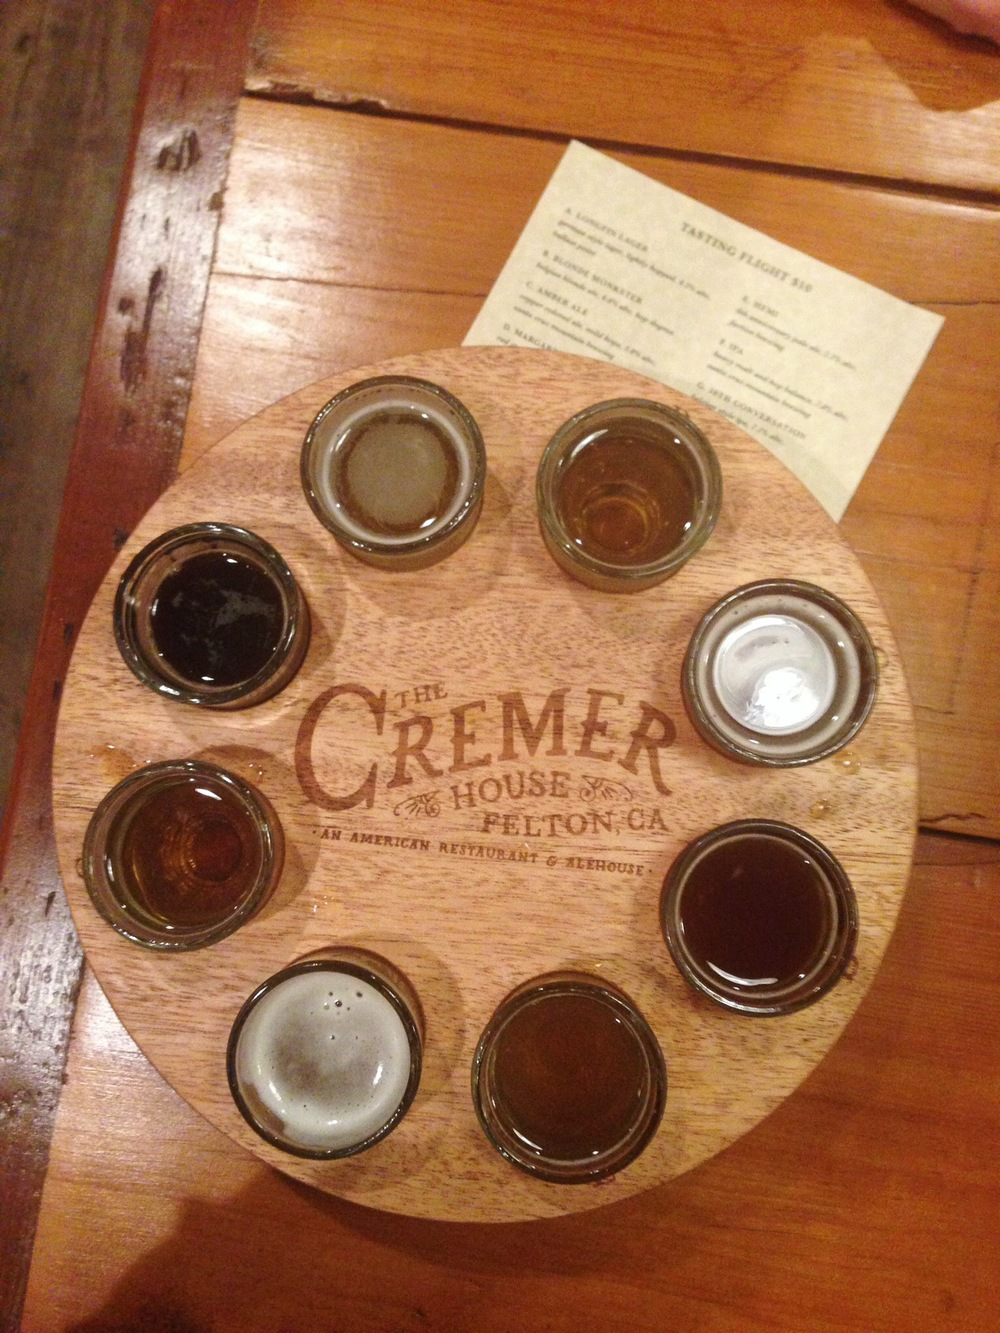 Cremer House tasting flight